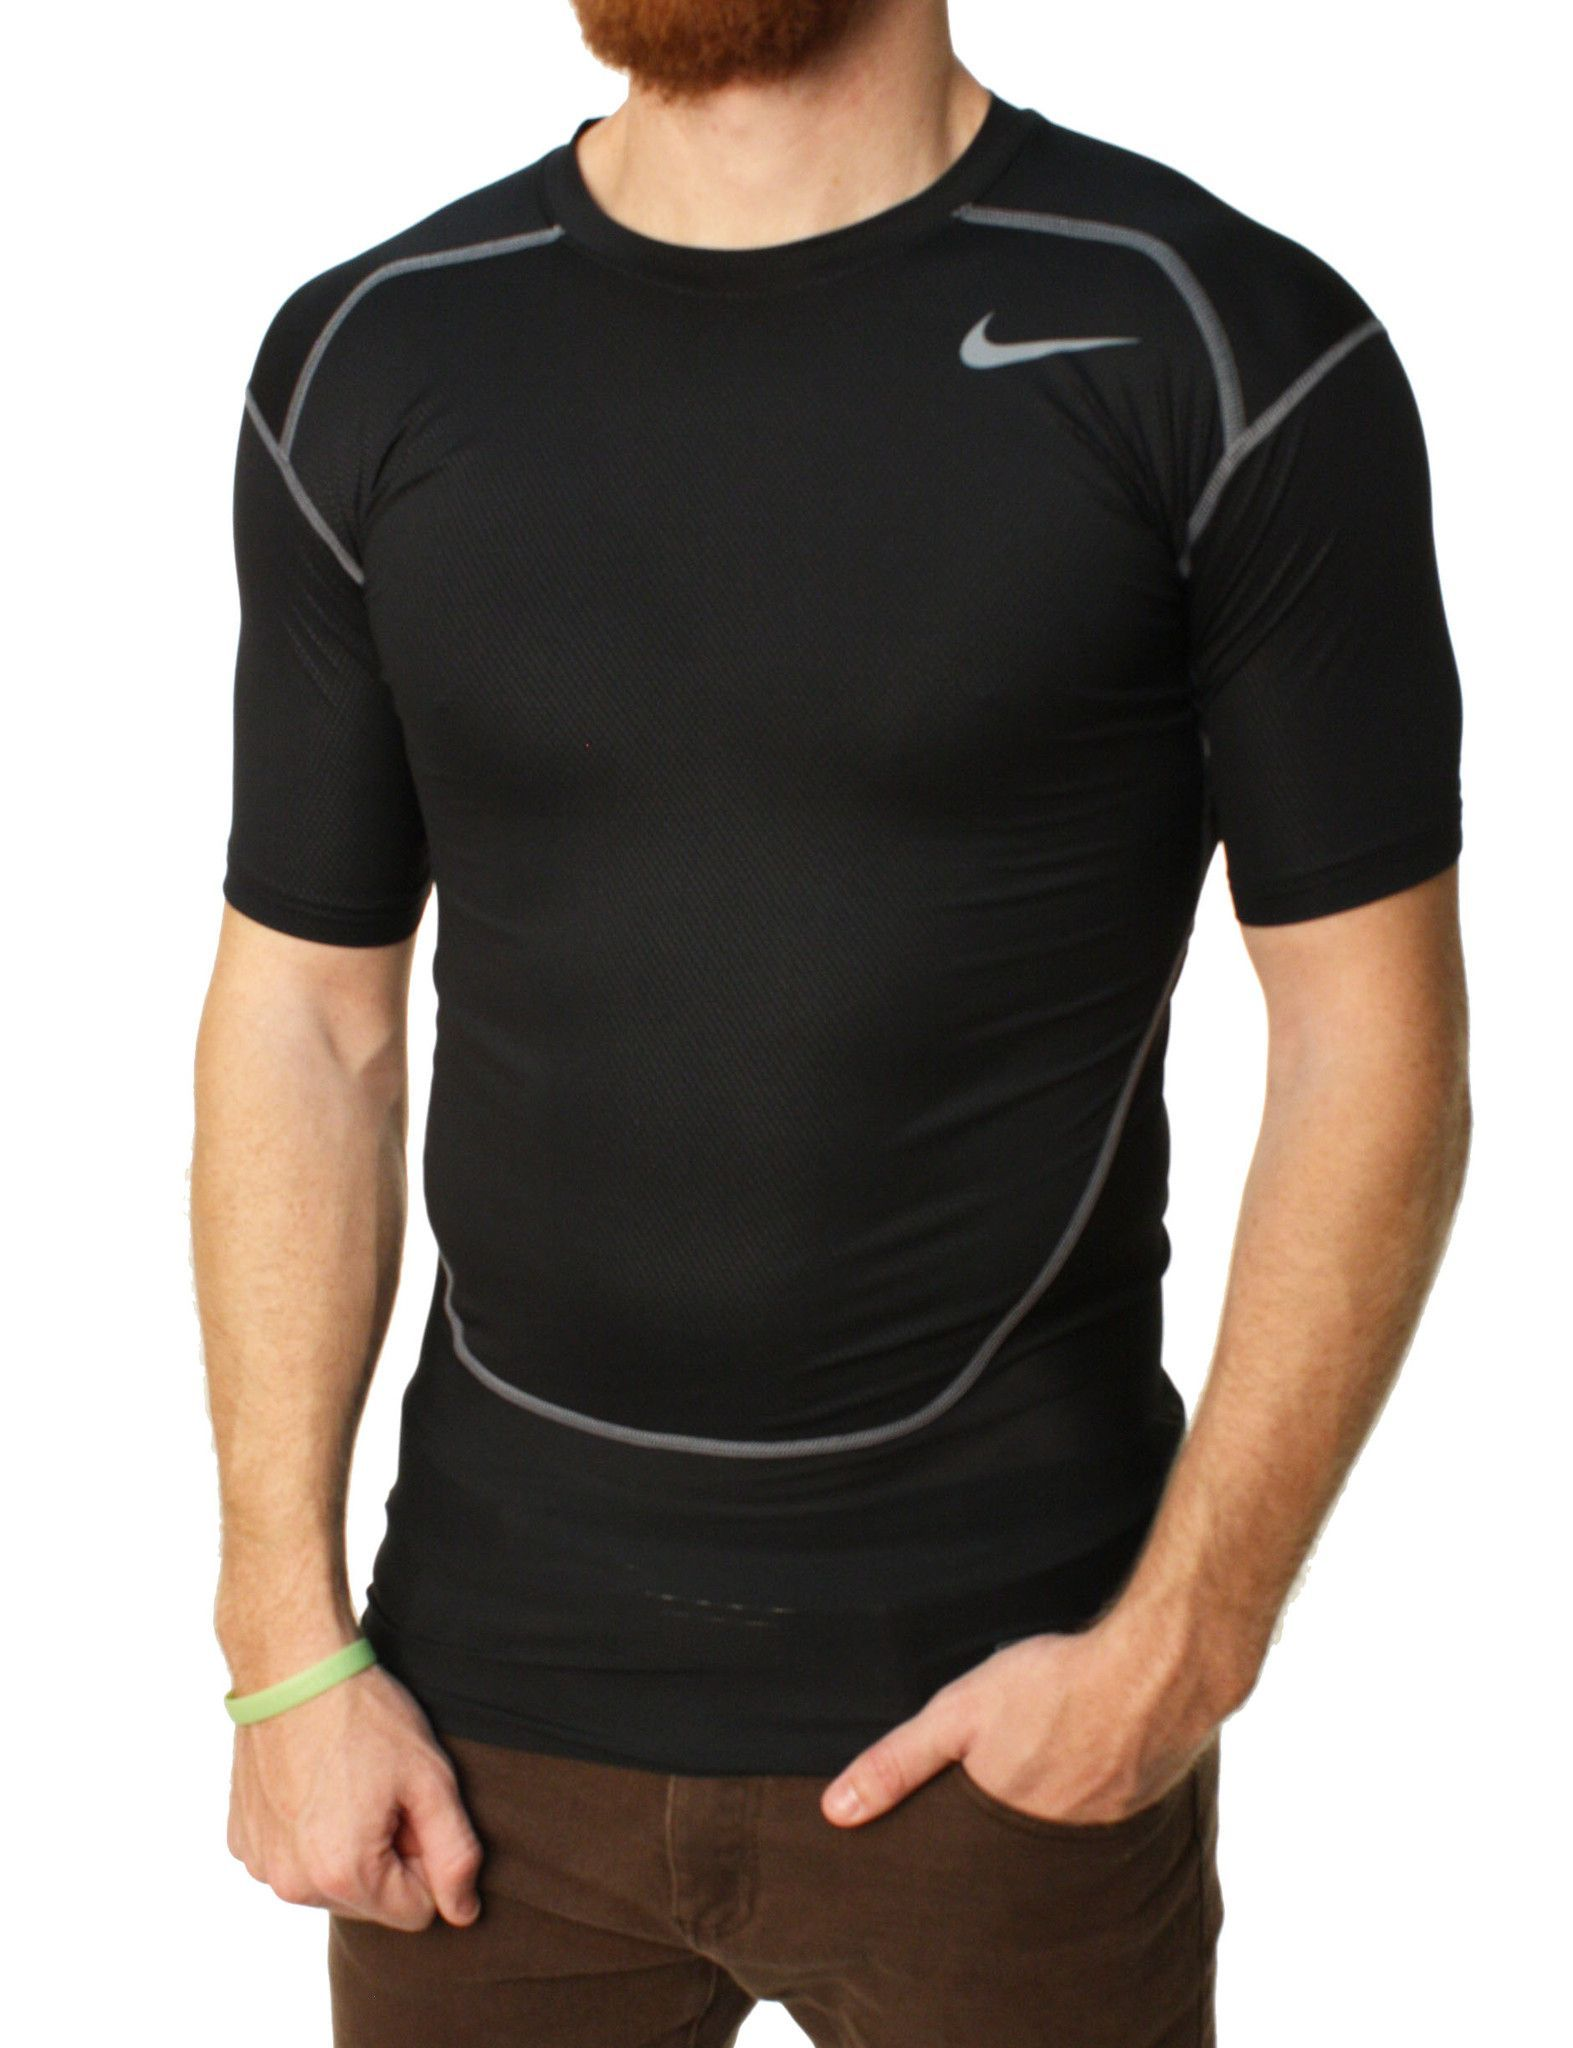 c2d84a5b Nike Pro Combat Men's Dri-Fit Max Hypercool Compression Training T-Shirt